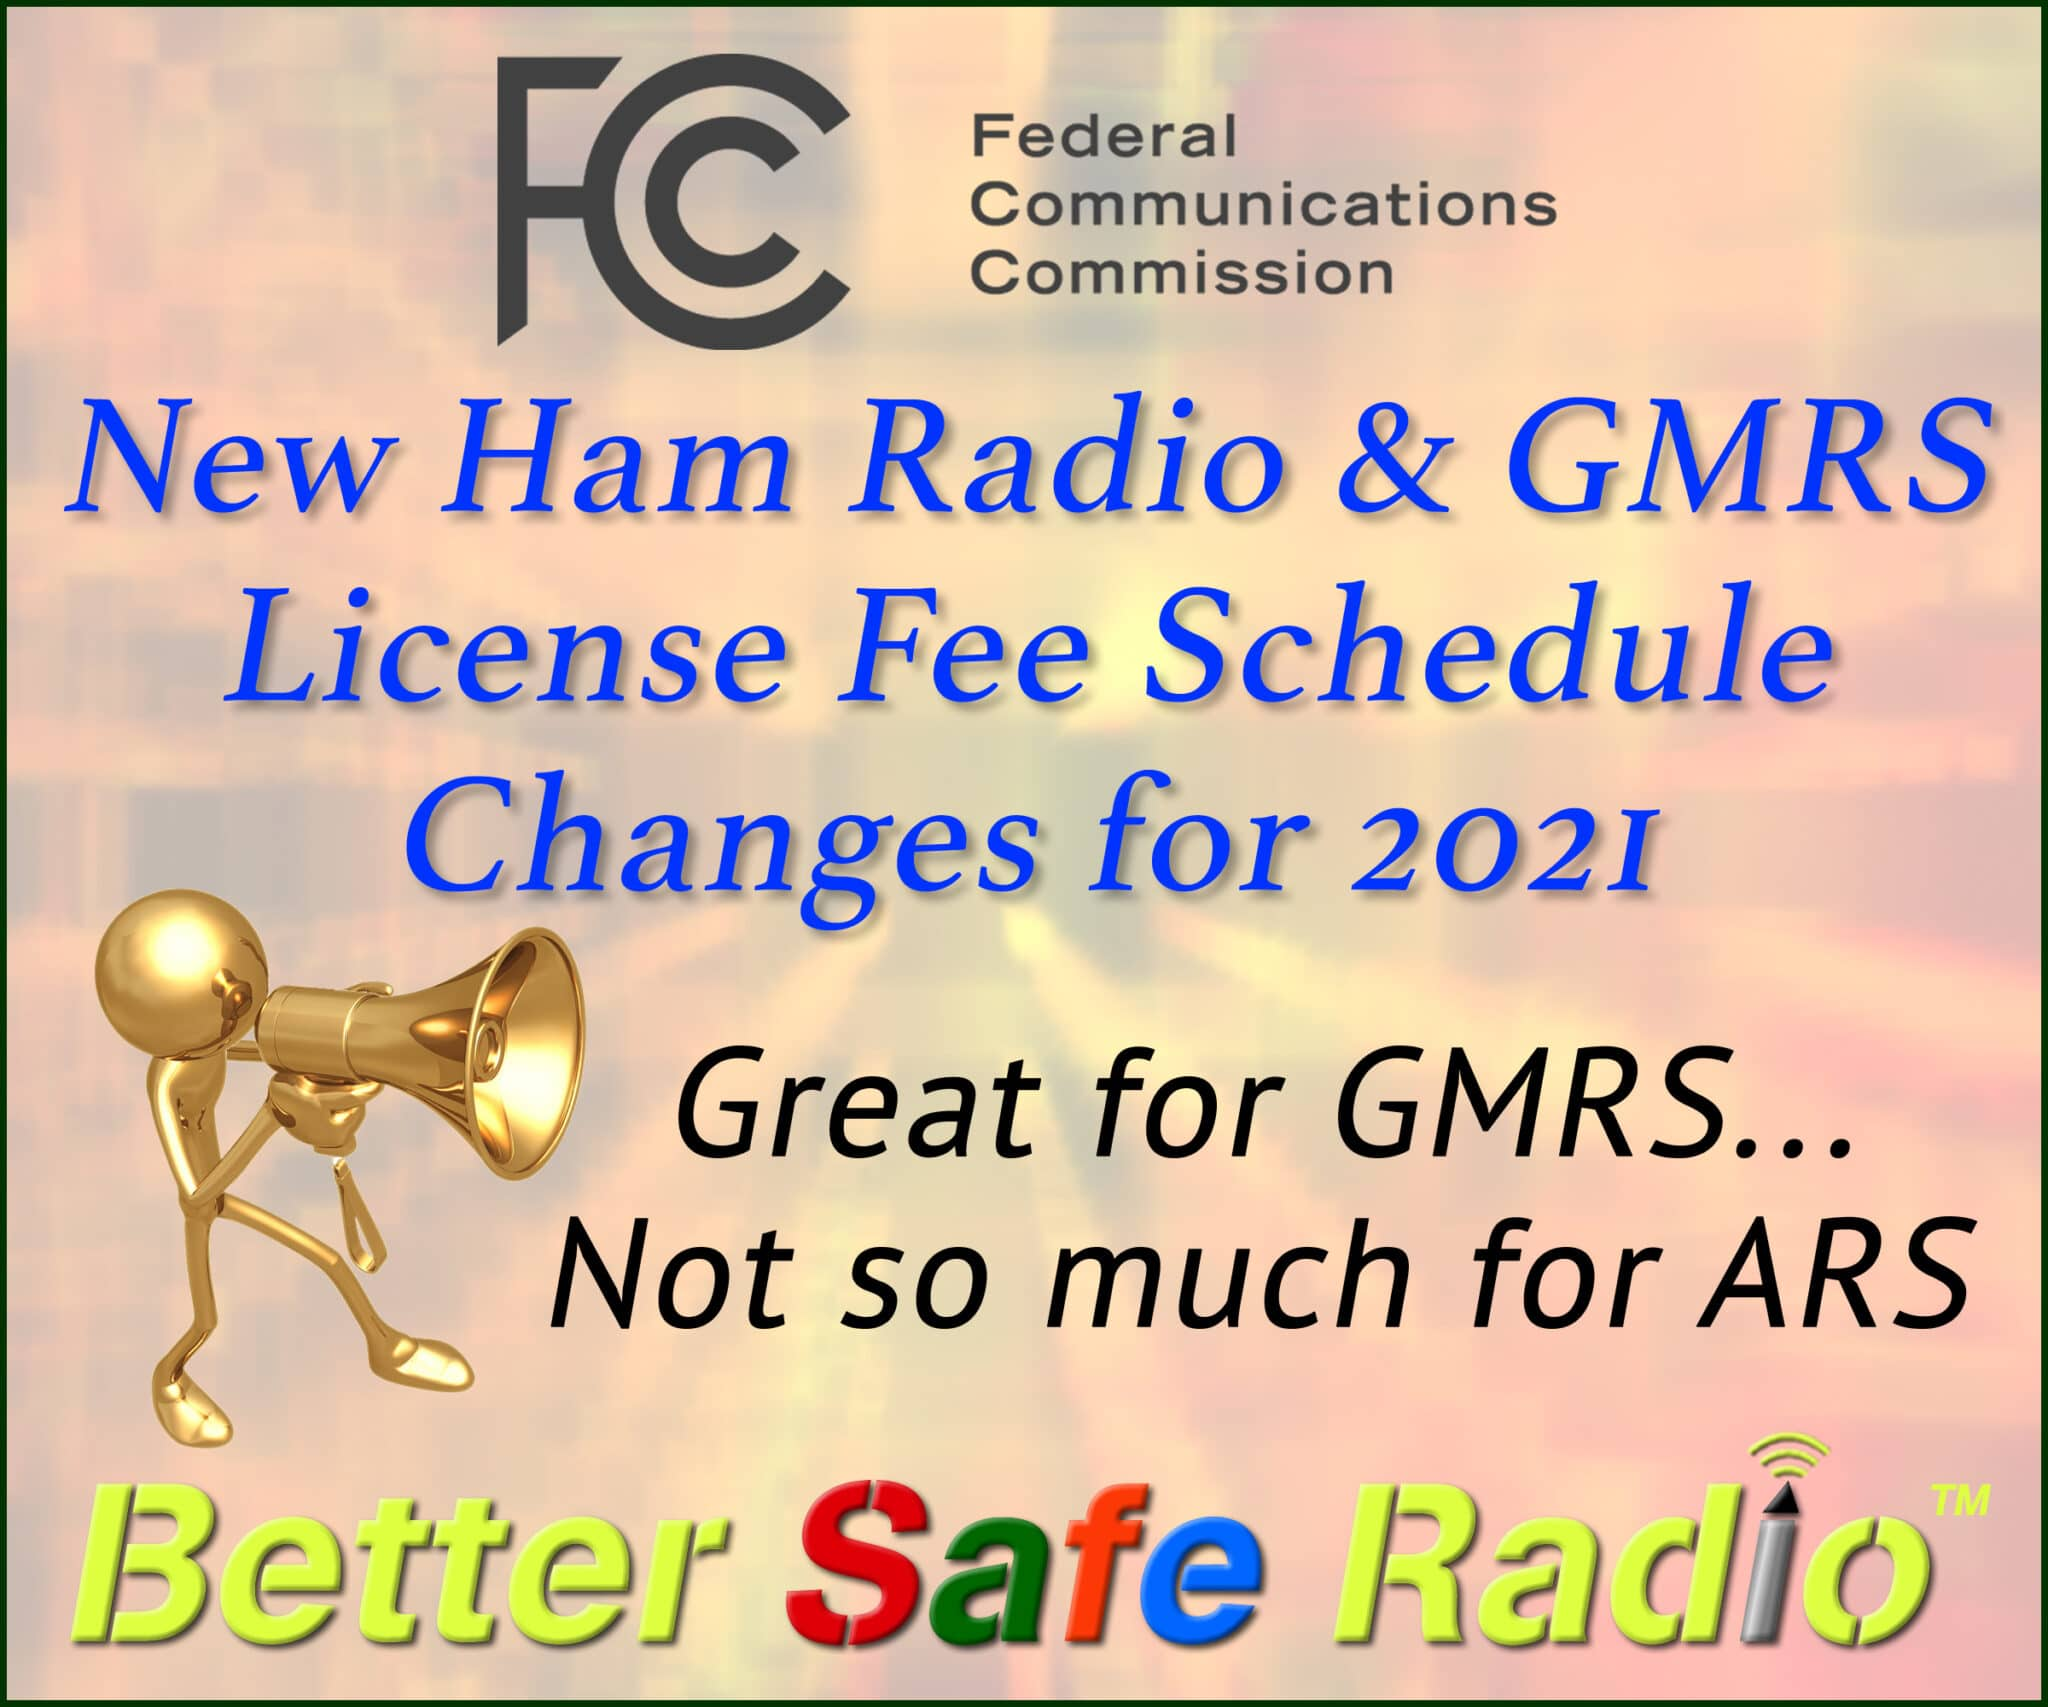 FCC_GMRS_Fee_Schedule_Changes_2021 Promo Image